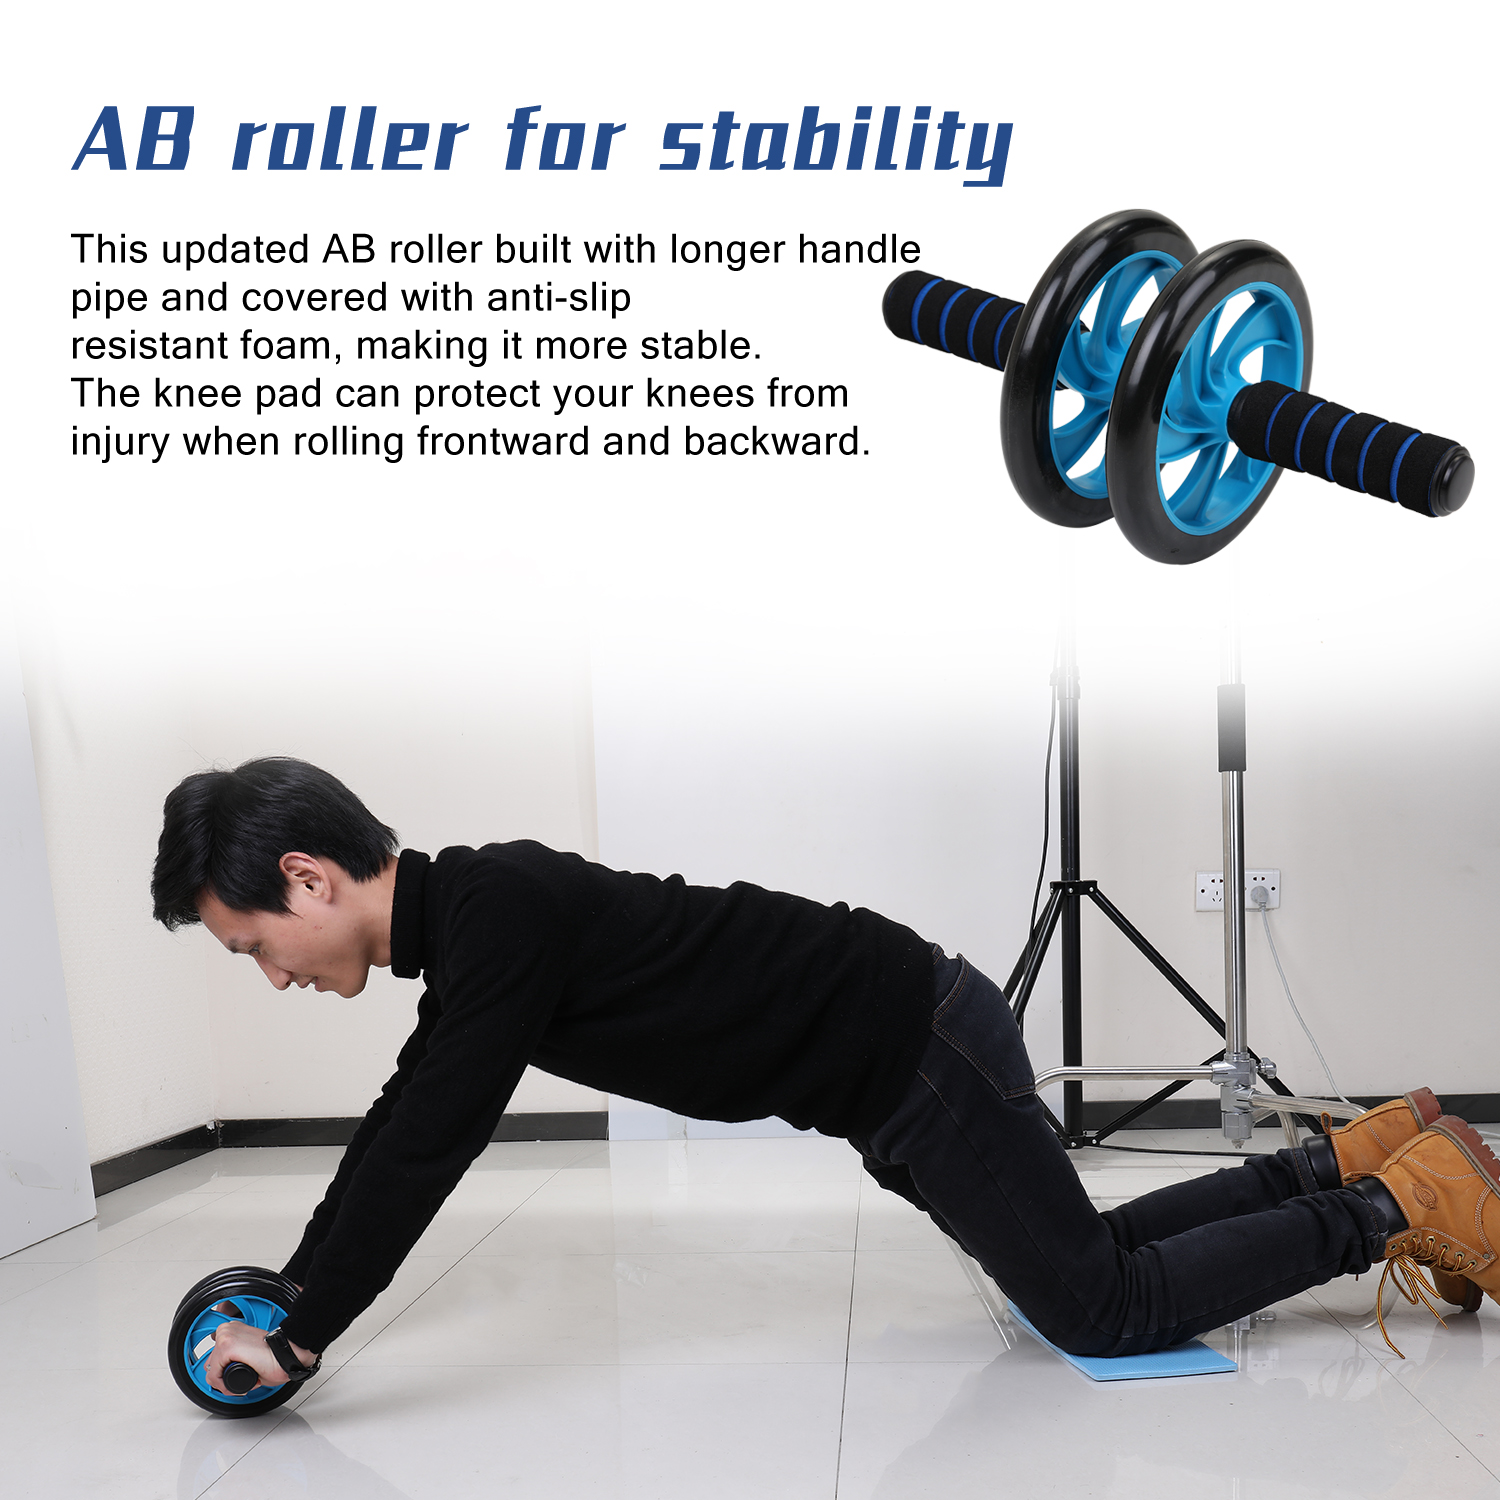 H428baf9566e144e382e678d29cba04a5m - 5-in-1 AB Roller Kit Abdominal Press Wheel Pro with Push-UP Bar Jump Rope Knee Pad Gym Home Exercise  Fitness Equipment